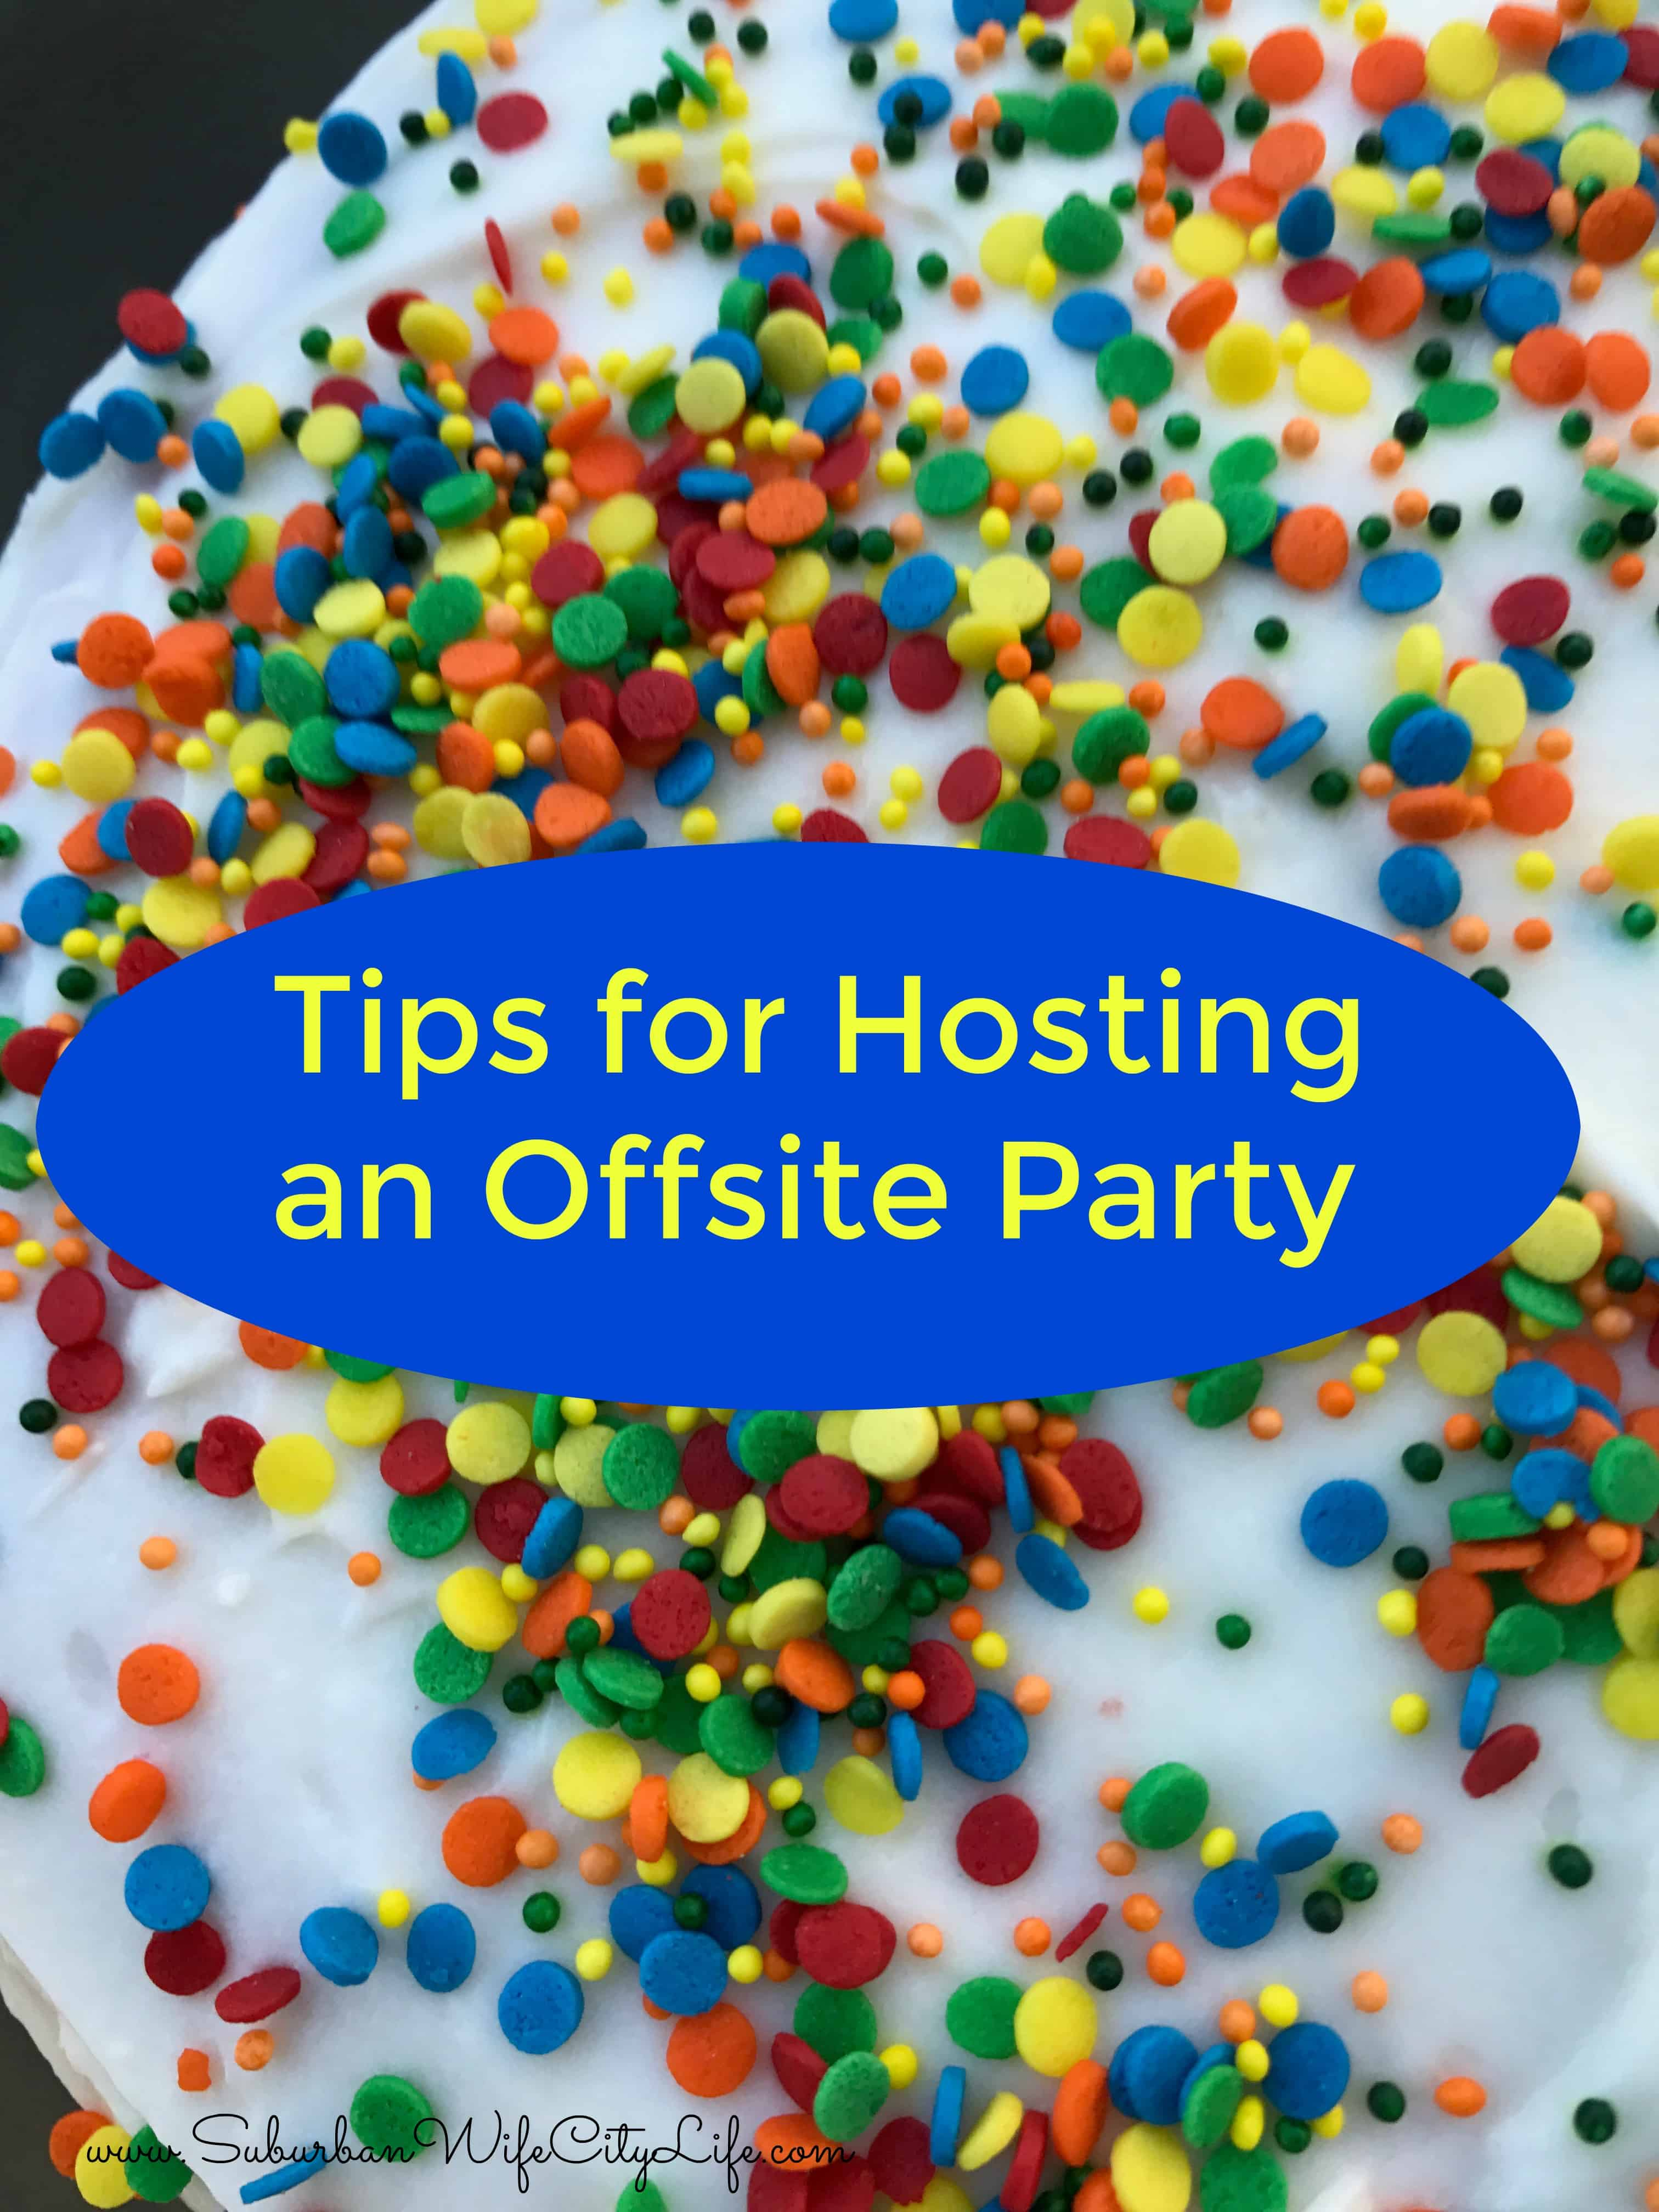 Tips for Hosting an offsite Party